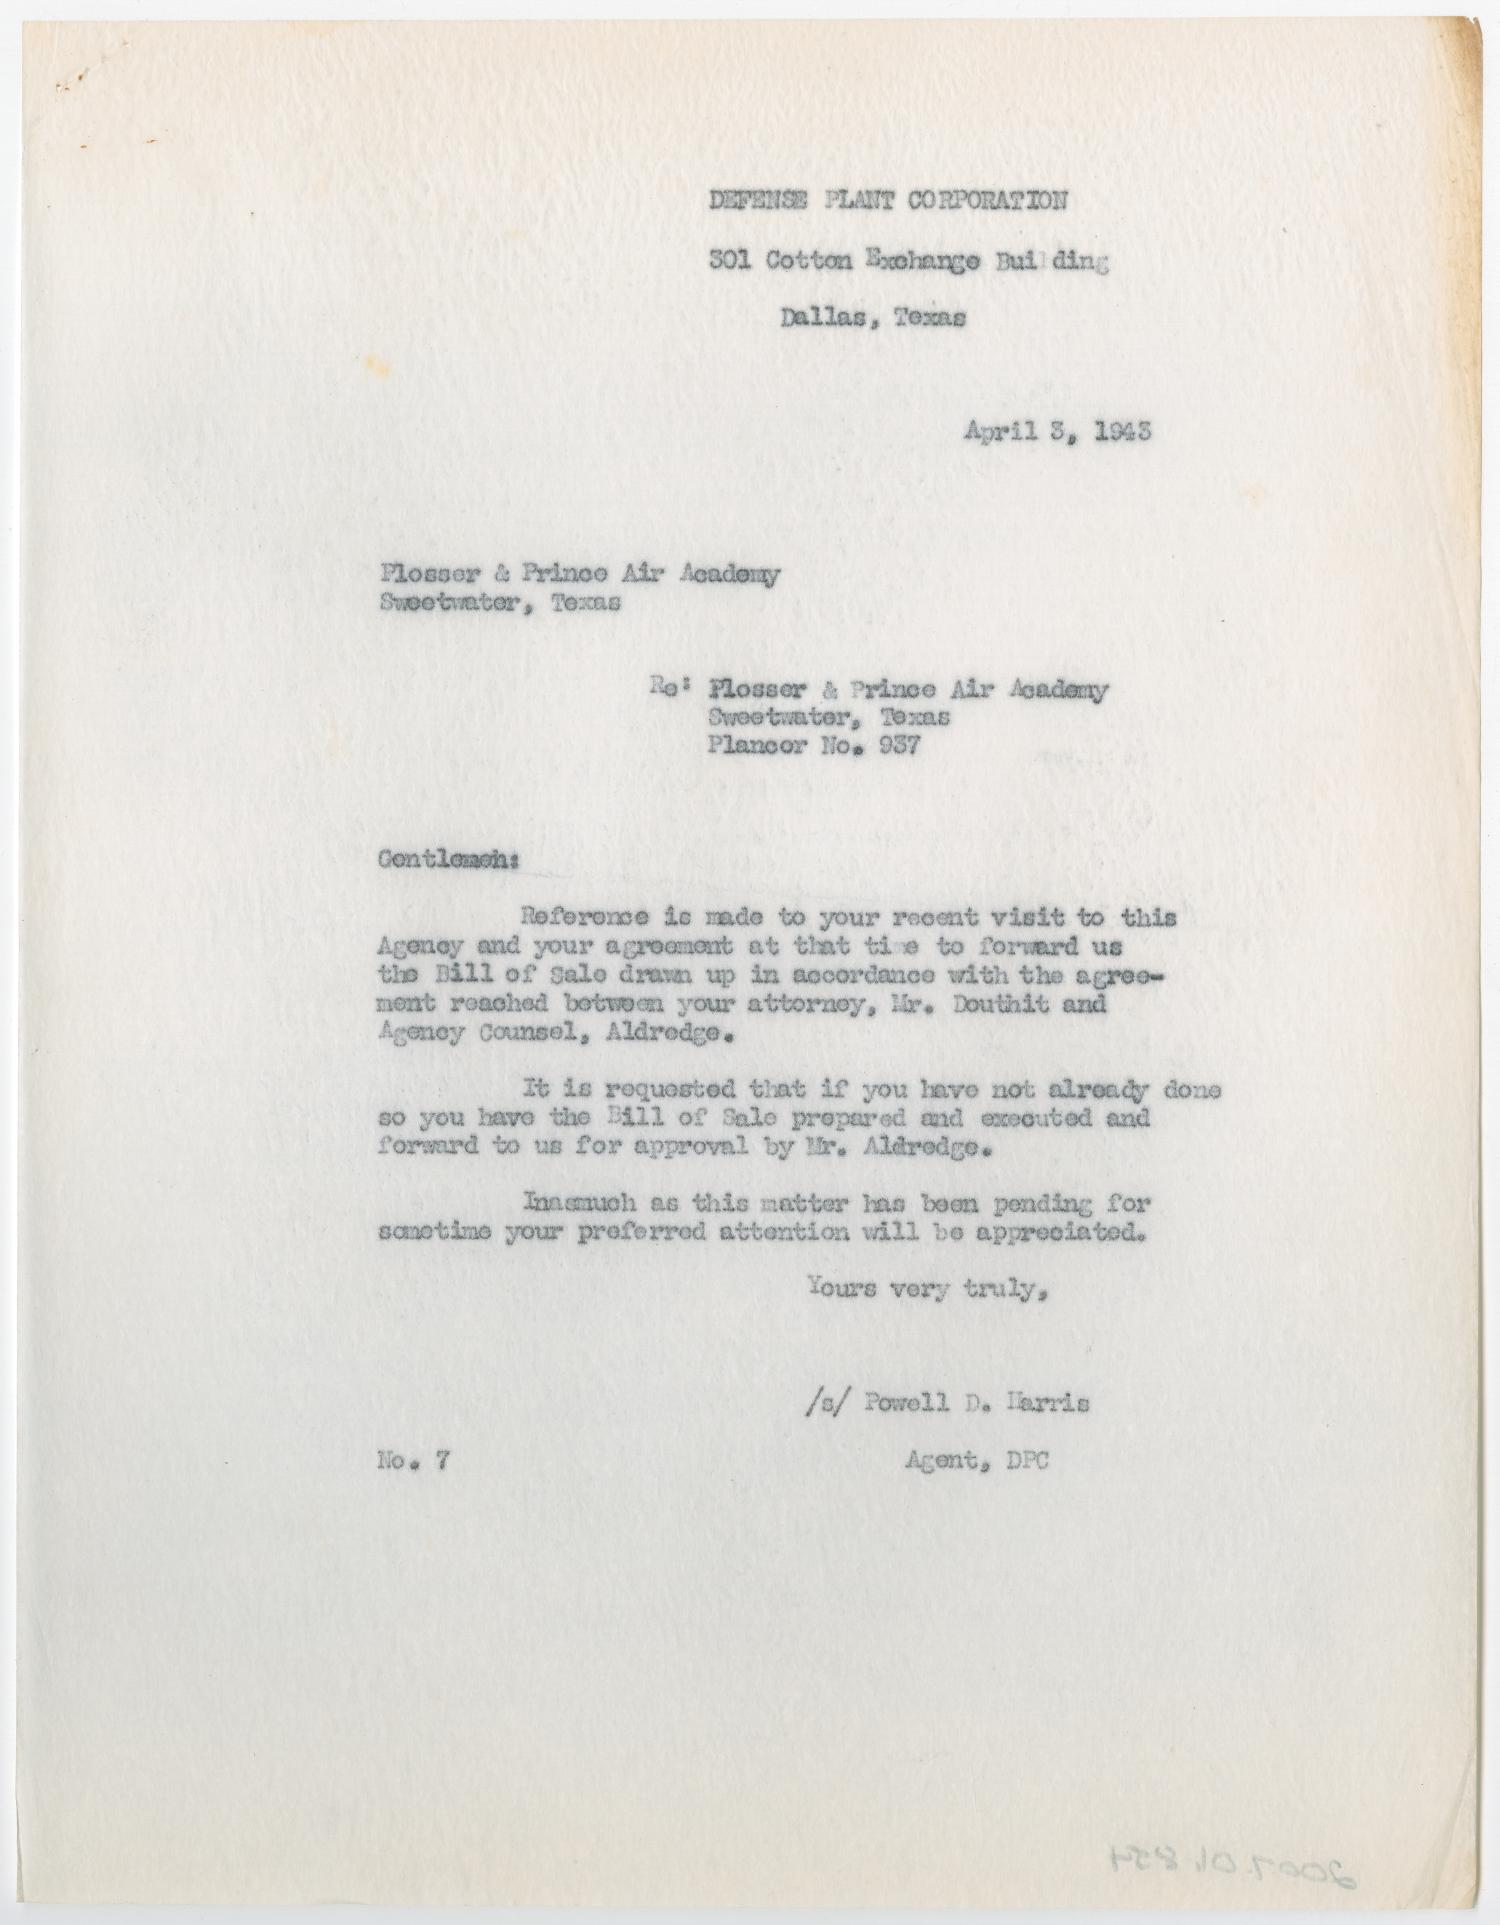 Letter From Powell D Harris To Plosser Prince Air Academy April 3